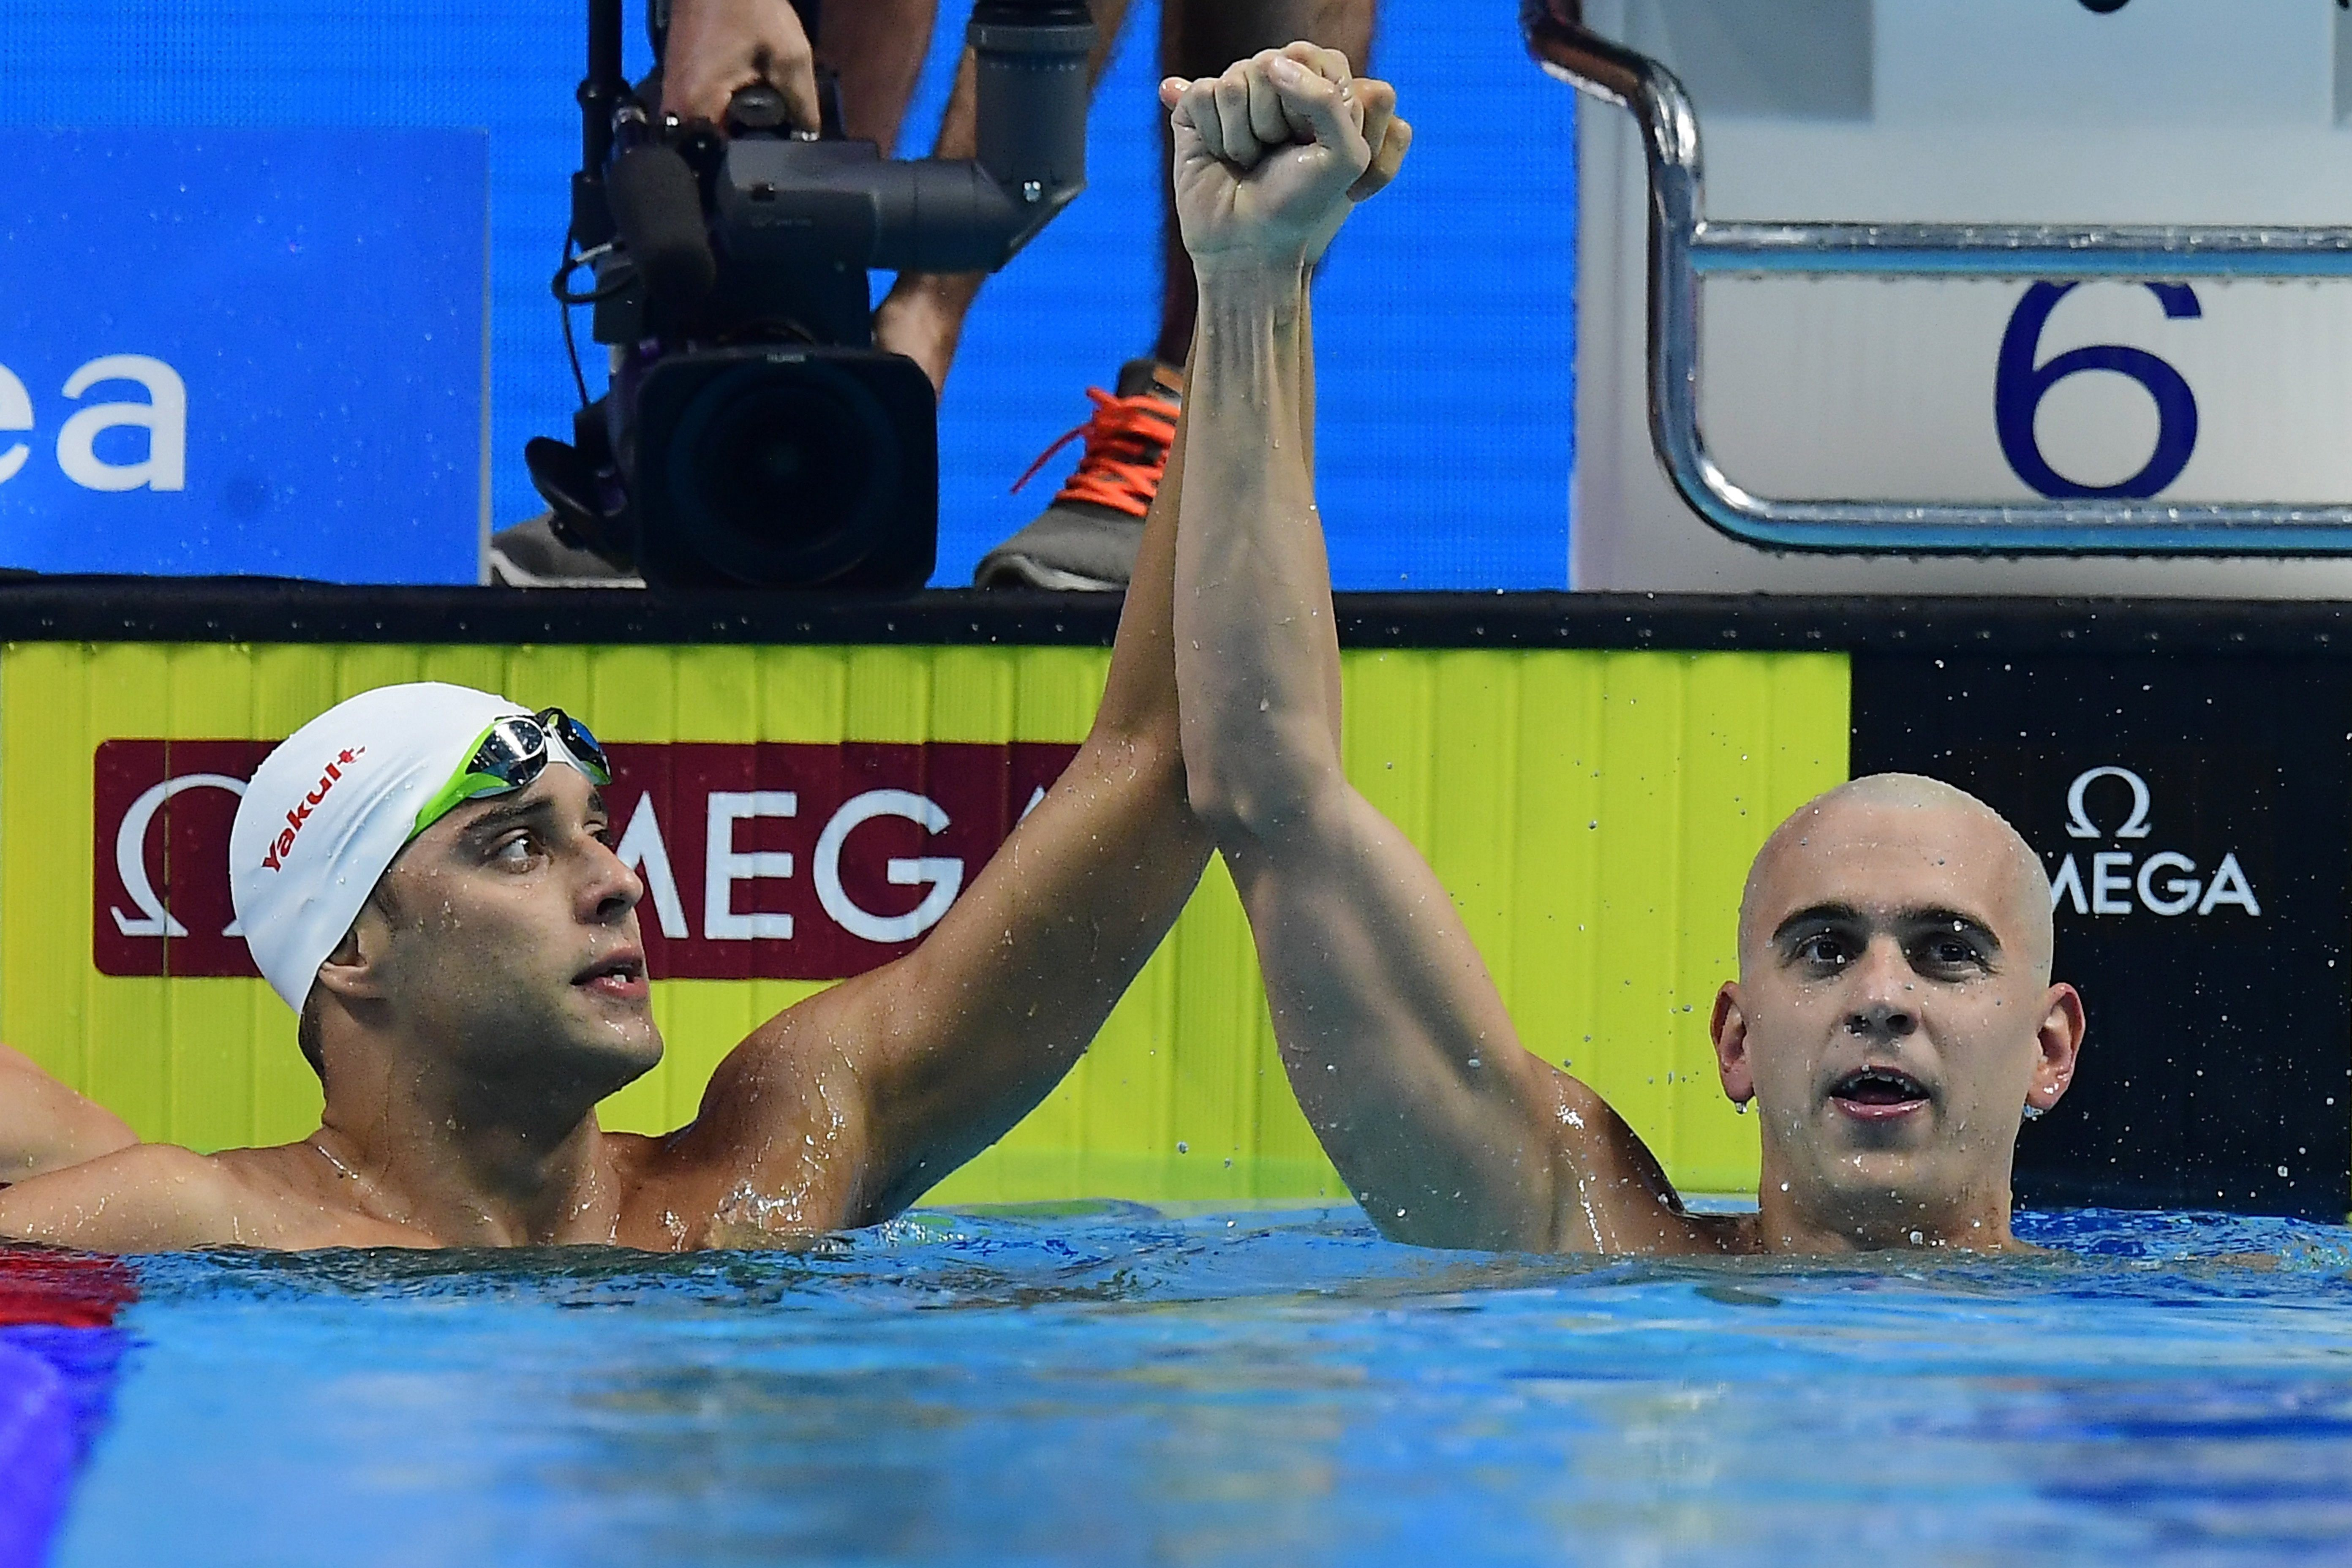 Gold medal winner Chad le Clos of South Africa, left, and Laszlo Cseh of Hungary react after the men's 200-meter butterfly final during the swimming competitions of the World Aquatics Championships in the Duna Arena in Budapest, Hungary, Wednesday, July 2